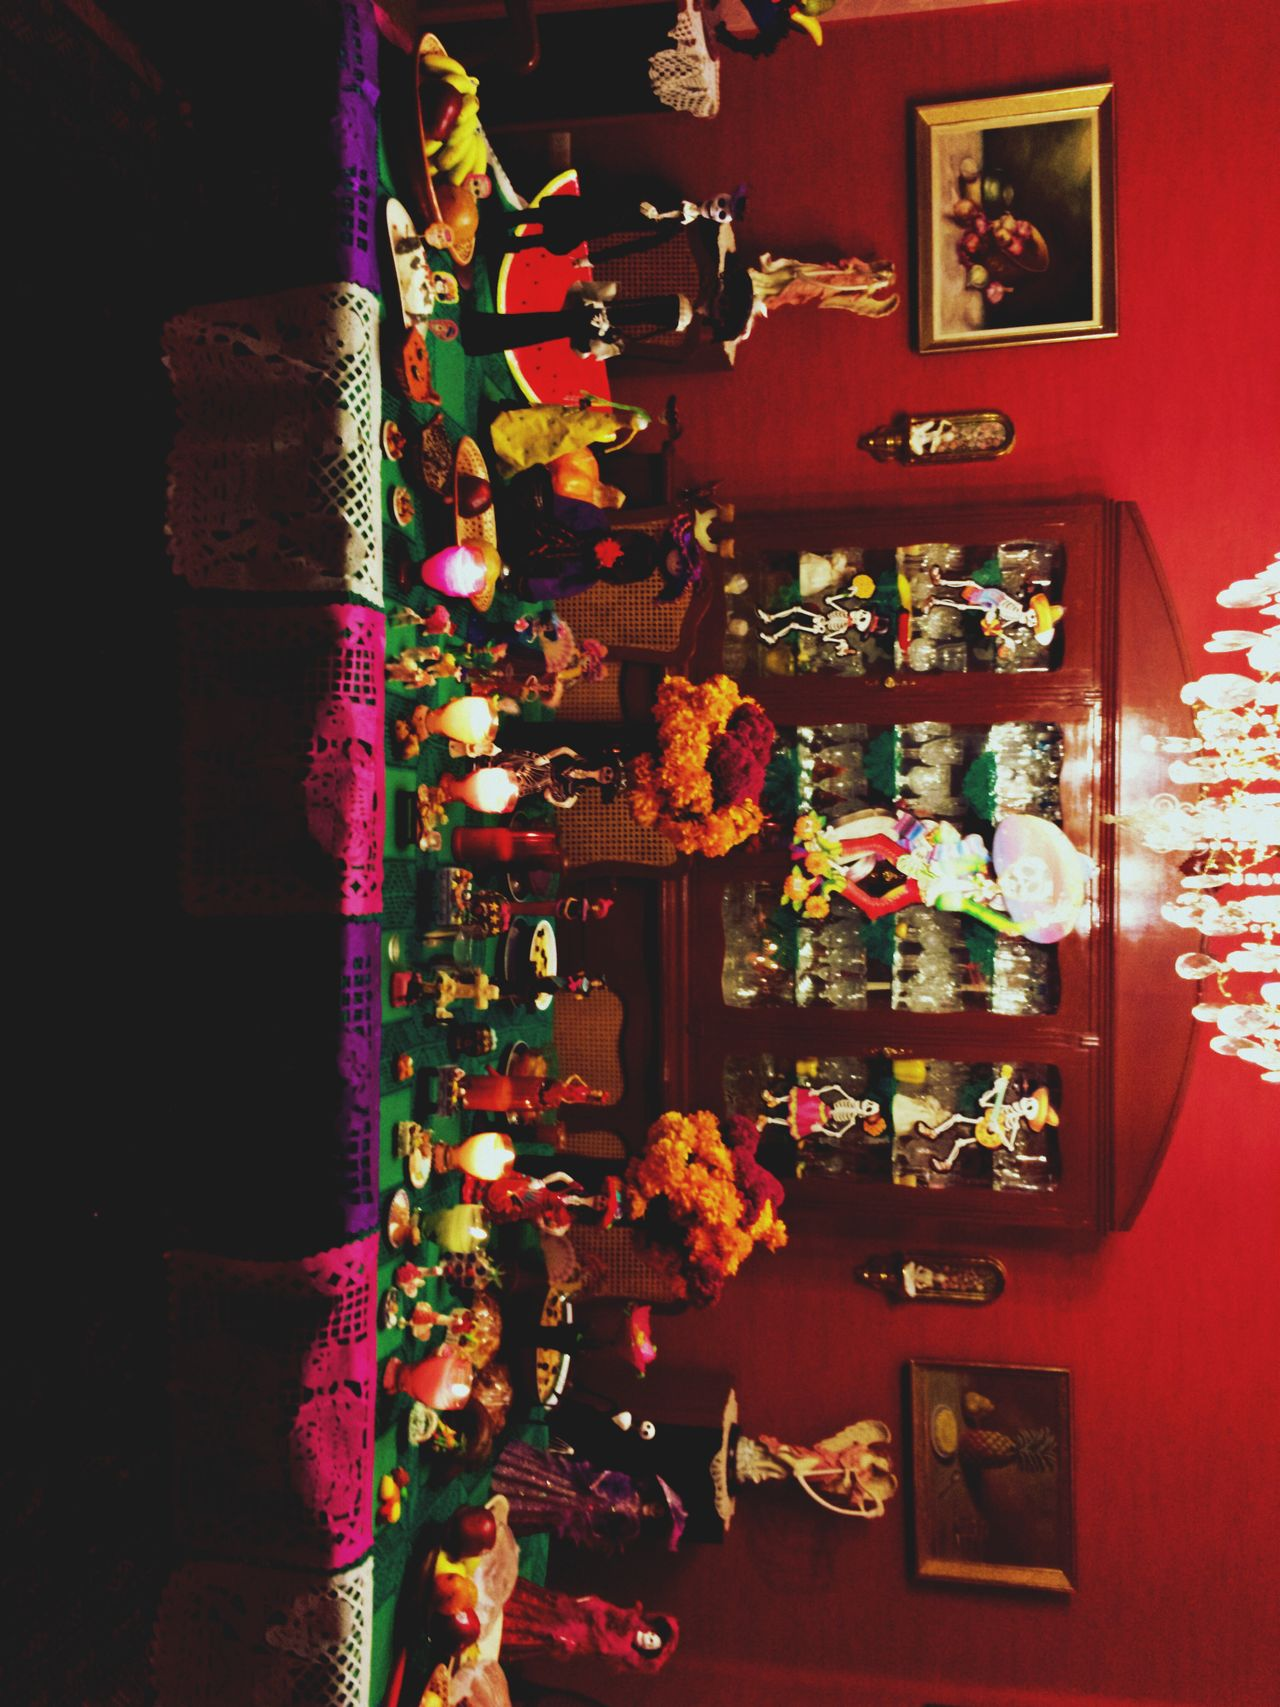 Ofrenda Flower No People Indoors  Night Illuminated Dramatic Angles AllSaintsDay